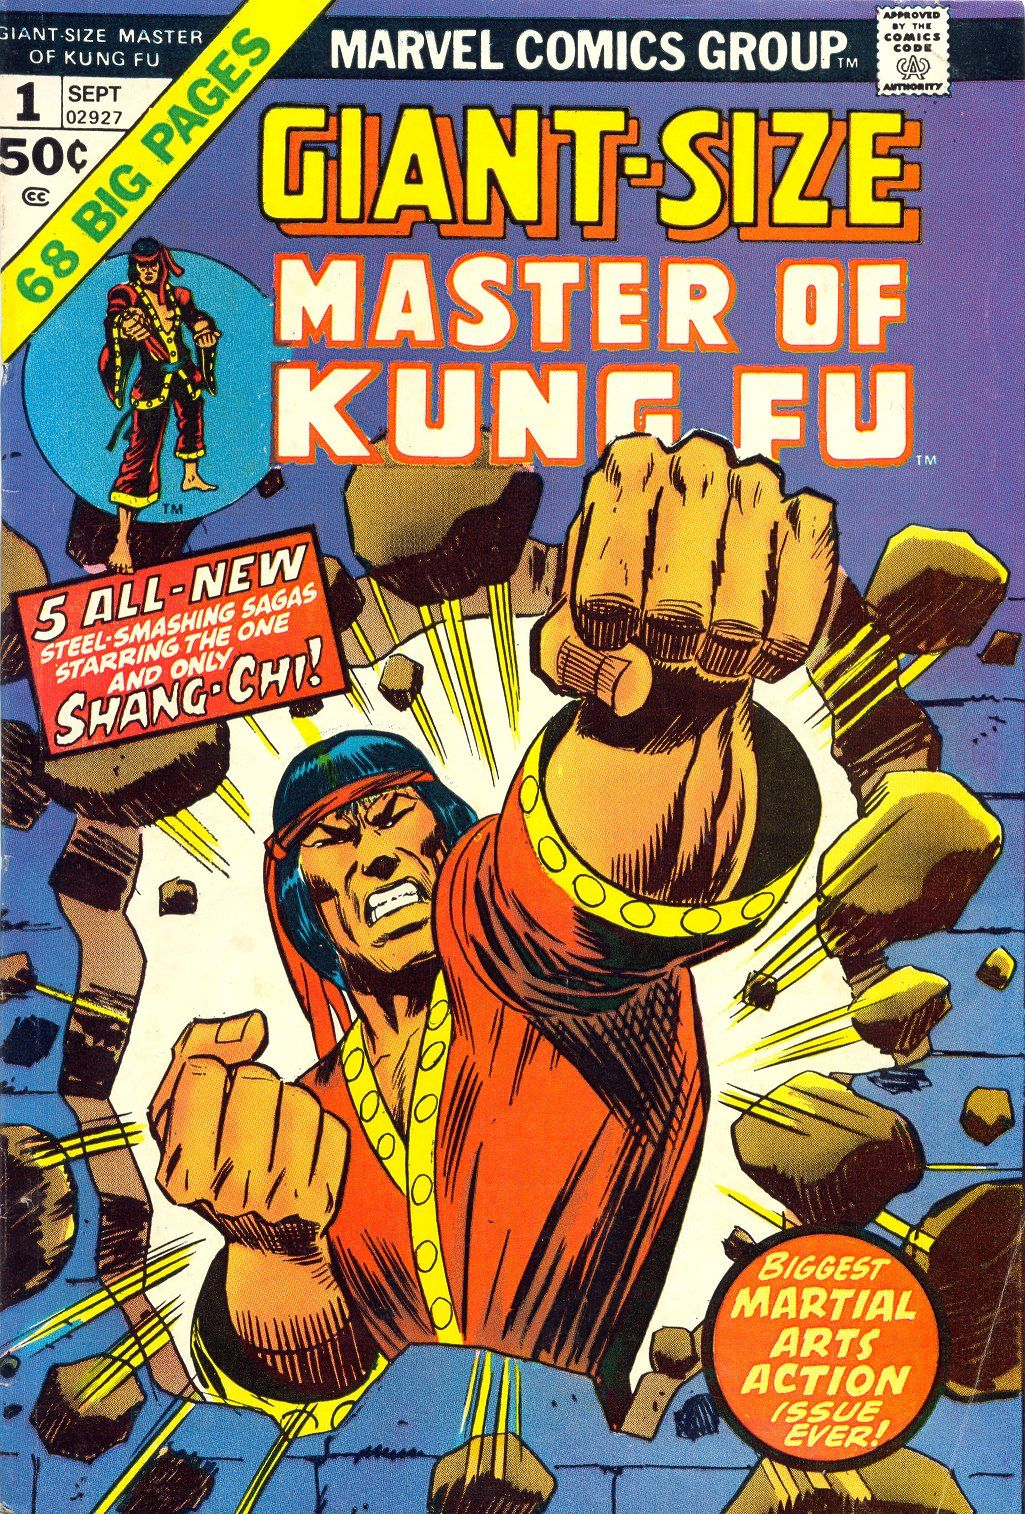 Giant Size Master Of Kung Fu #1,September 1974, Pencils: Ron Wilson, Inks: Mike Esposito